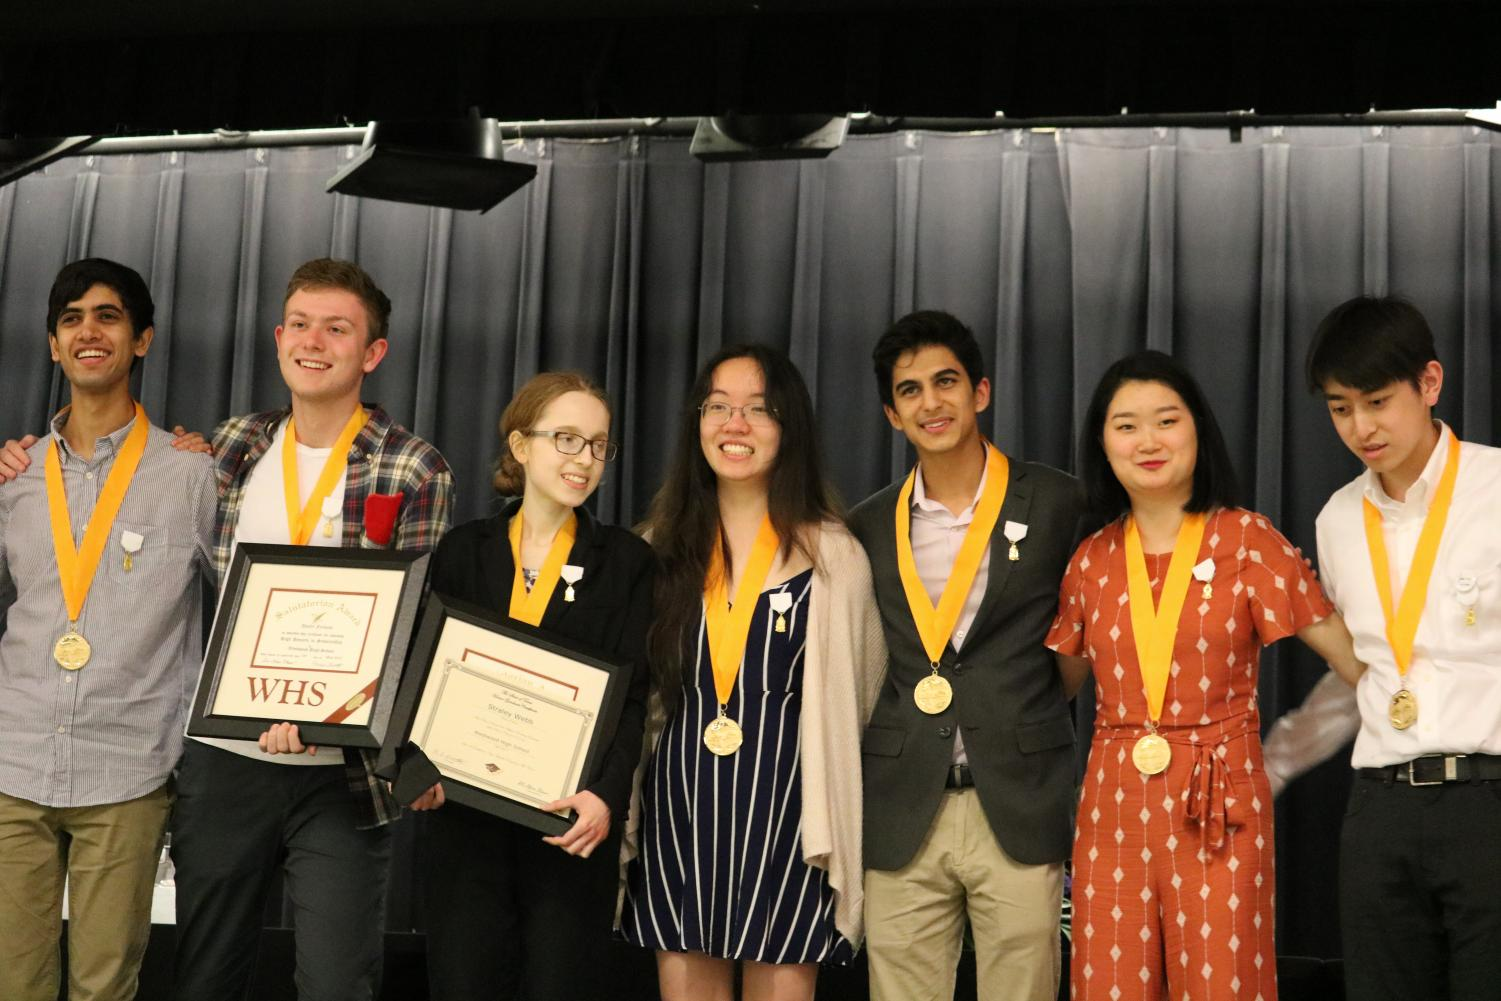 Seniors+Chinmaya+Andukuri%2C+Daniel+Farkash%2C++Straley+Webb%2C+Helen+Fang%2C+Sameer+Jain%2C+Grace+Liu%2C+and+David+Xu+are+honored+with+medals+that+distinguish+them+among+the+top+10+students+in+their+class.+